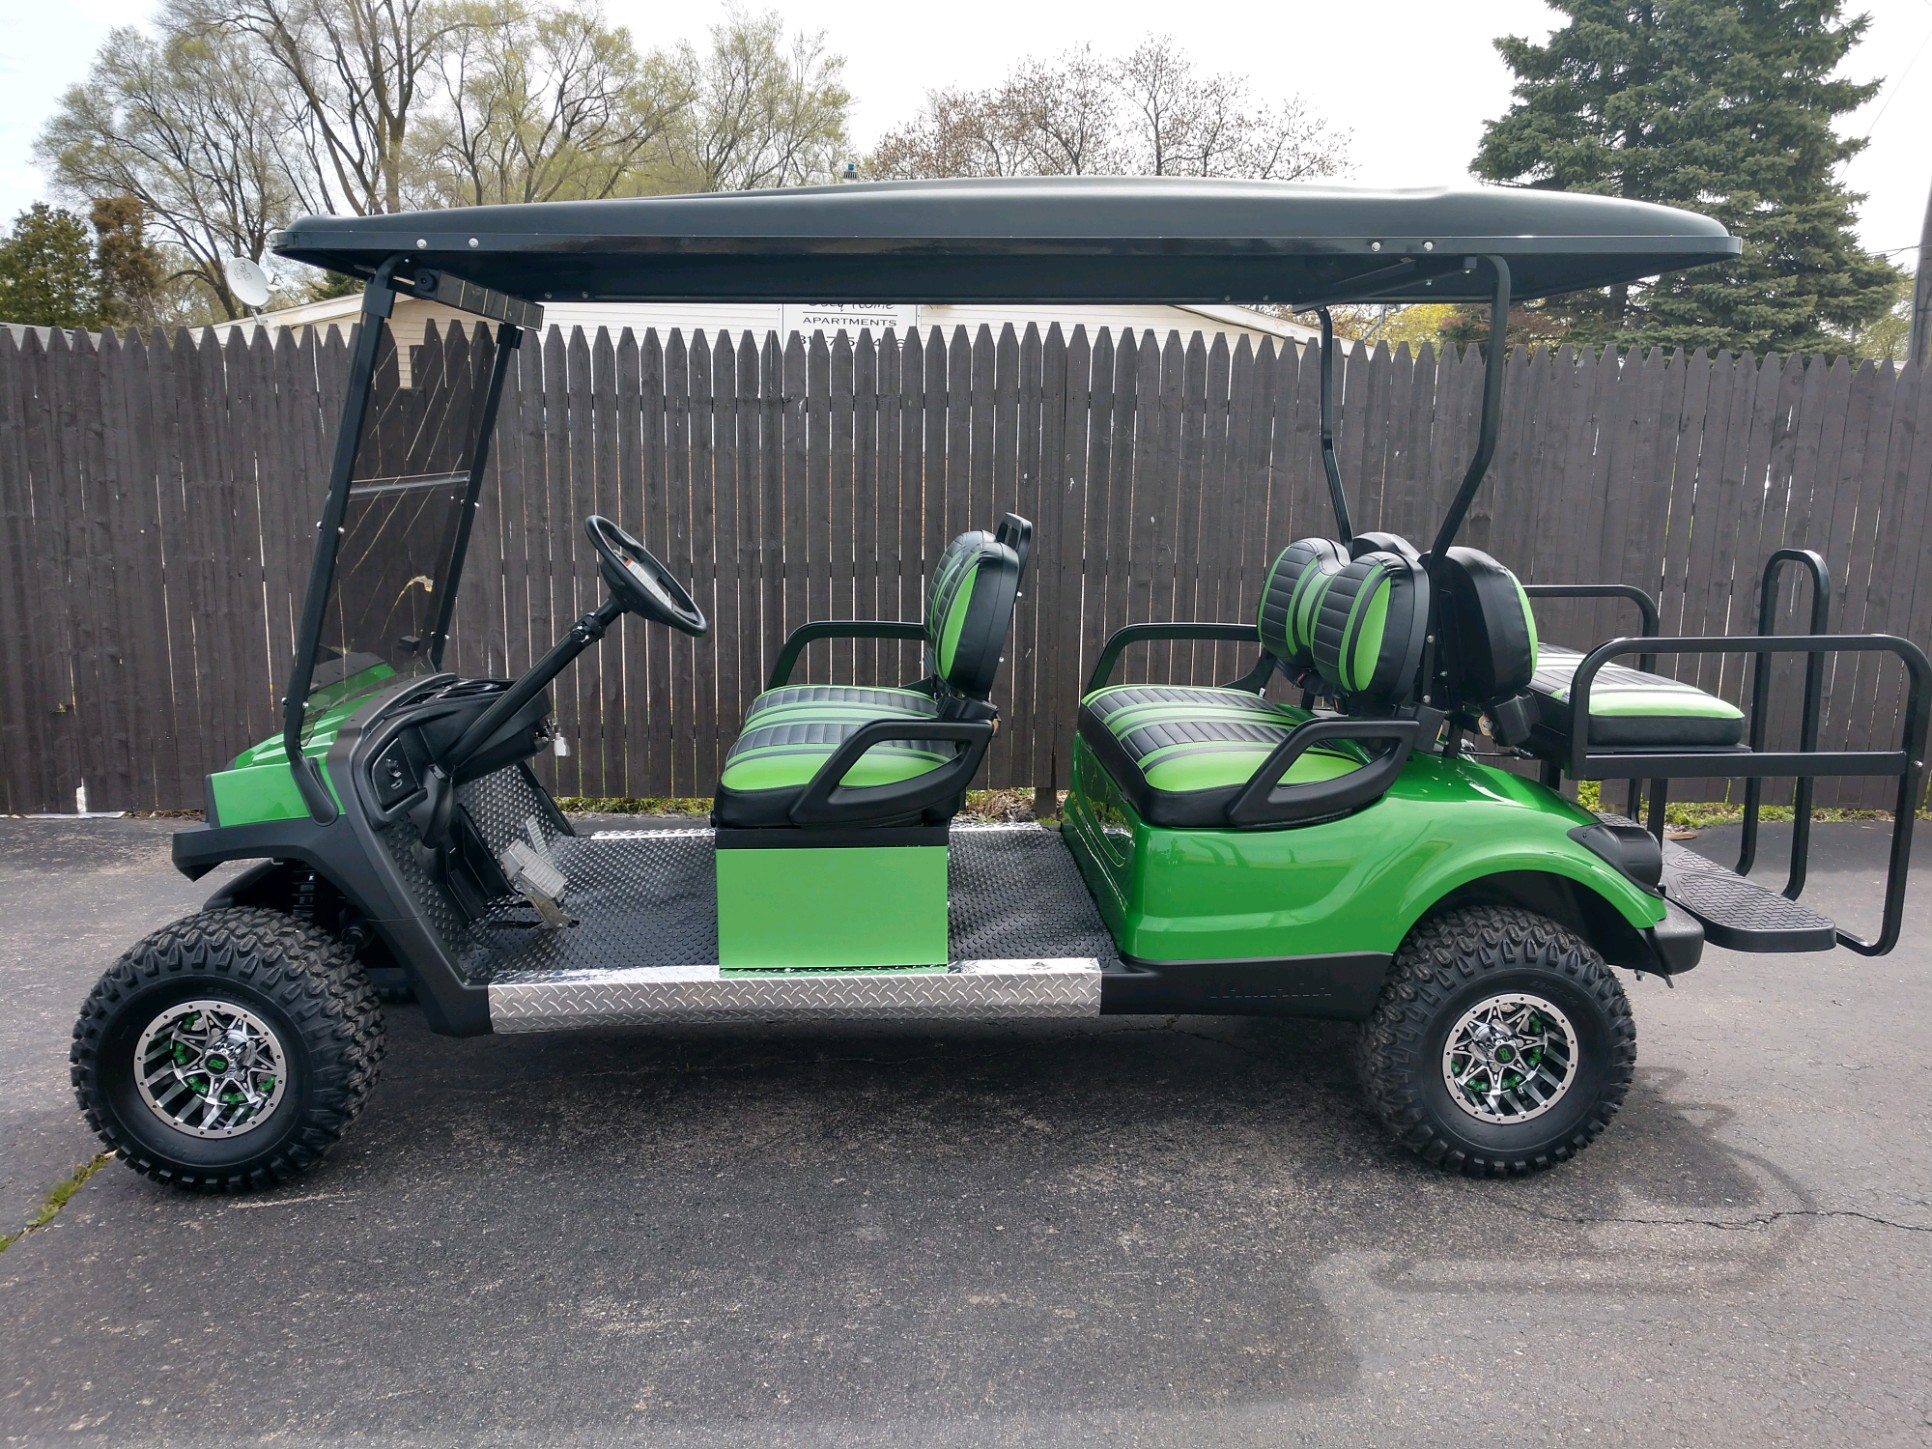 Plowman's Carts - Golf Cars - Golf Cars, Golf Carts and Utility